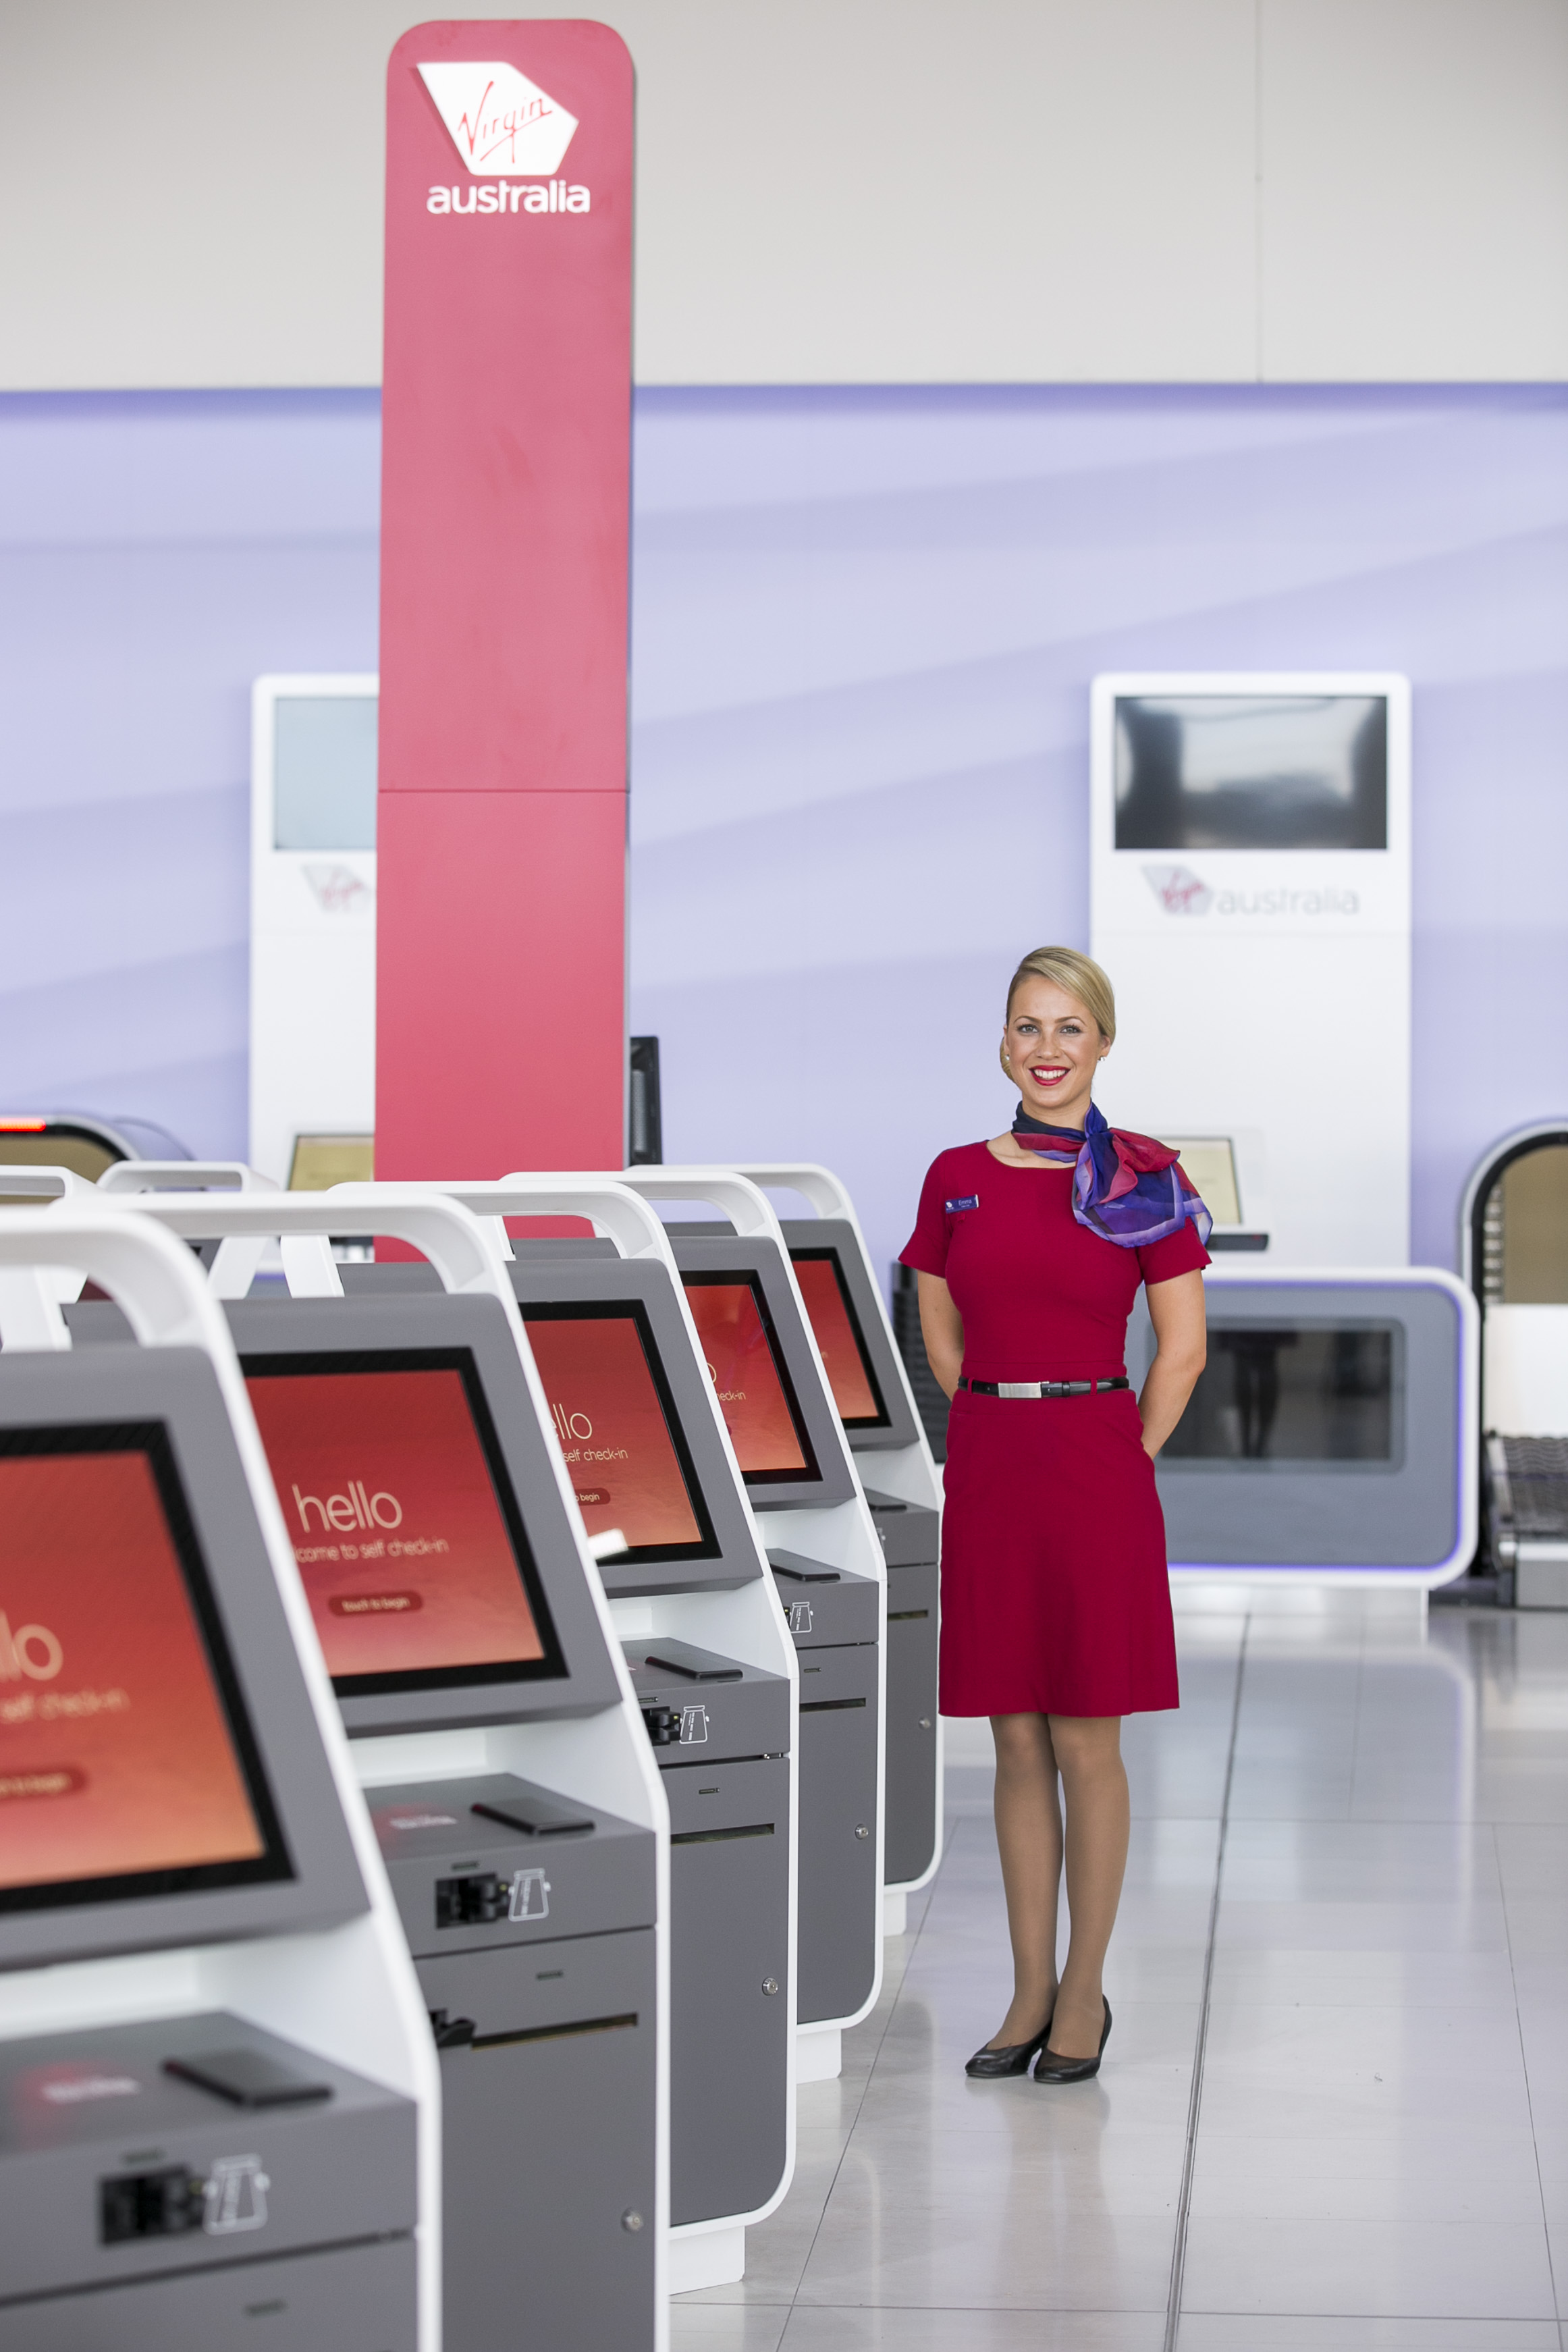 11) Virgin Australia Check In 1